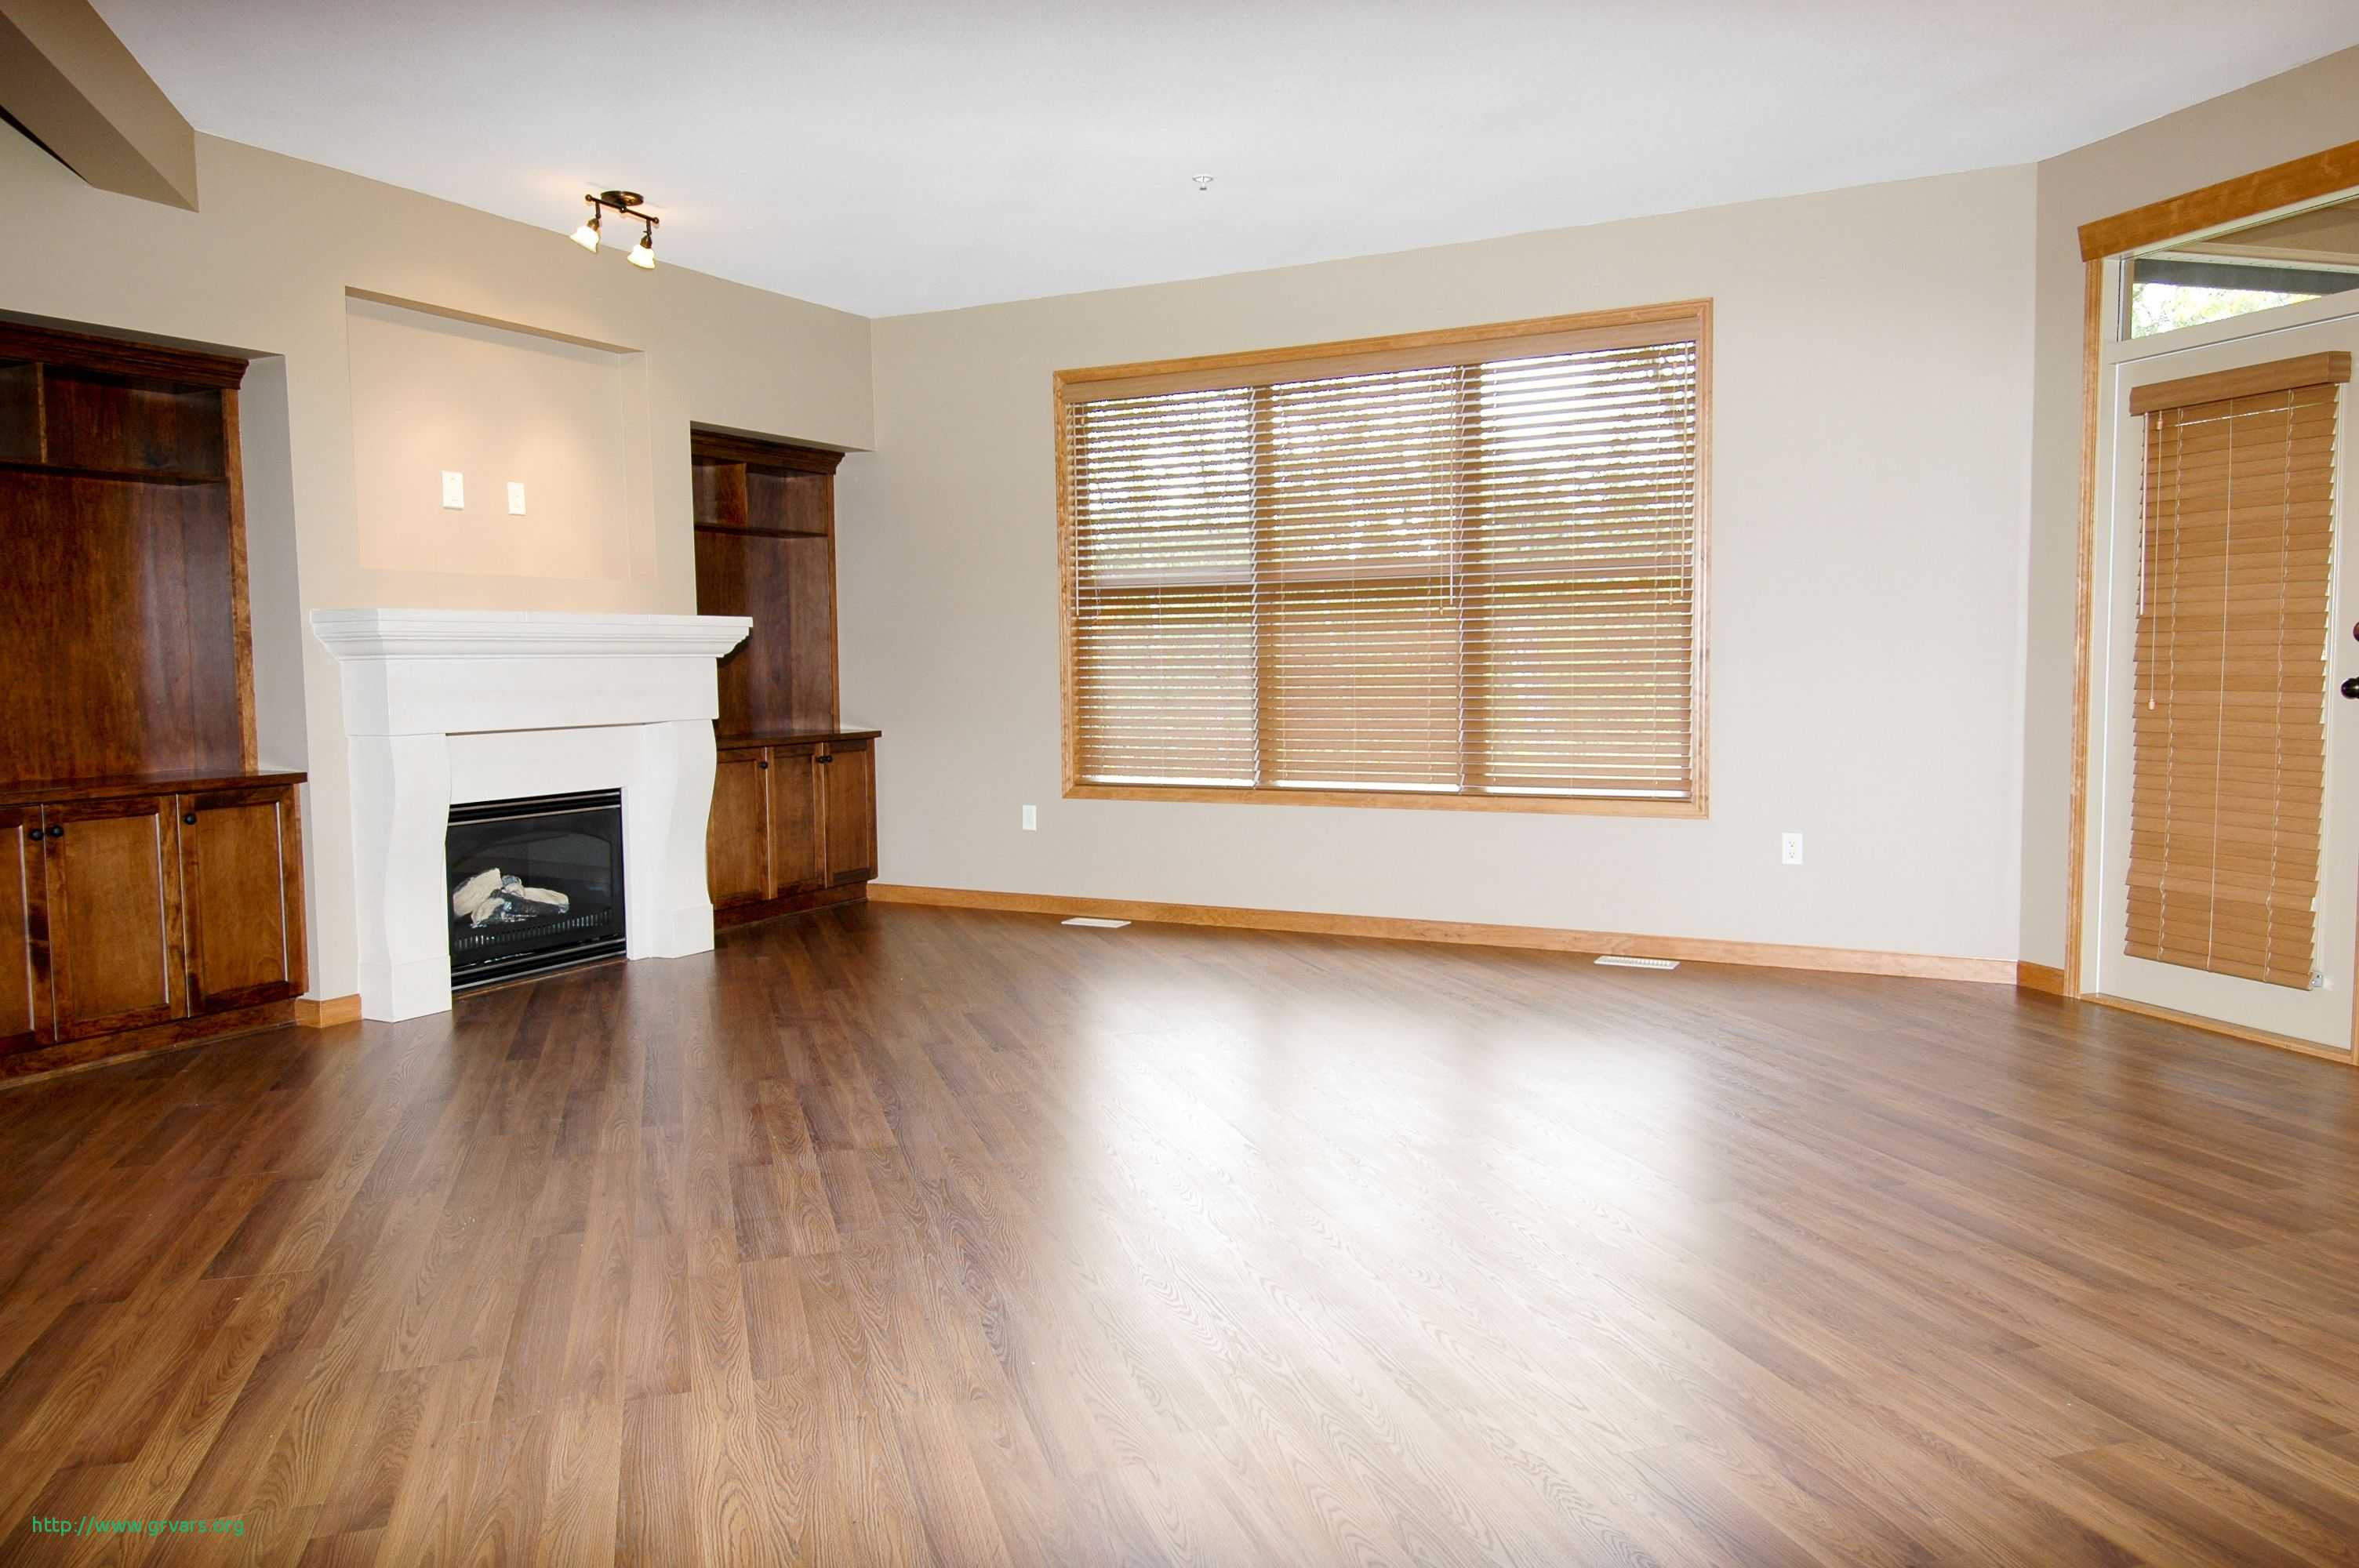 20 Cute Hardwood Flooring Questions 2021 free download hardwood flooring questions of 16 beau hardwood floor underlayment noise reduction ideas blog for hardwood floor underlayment noise reduction unique what is a finish floor or floor covering